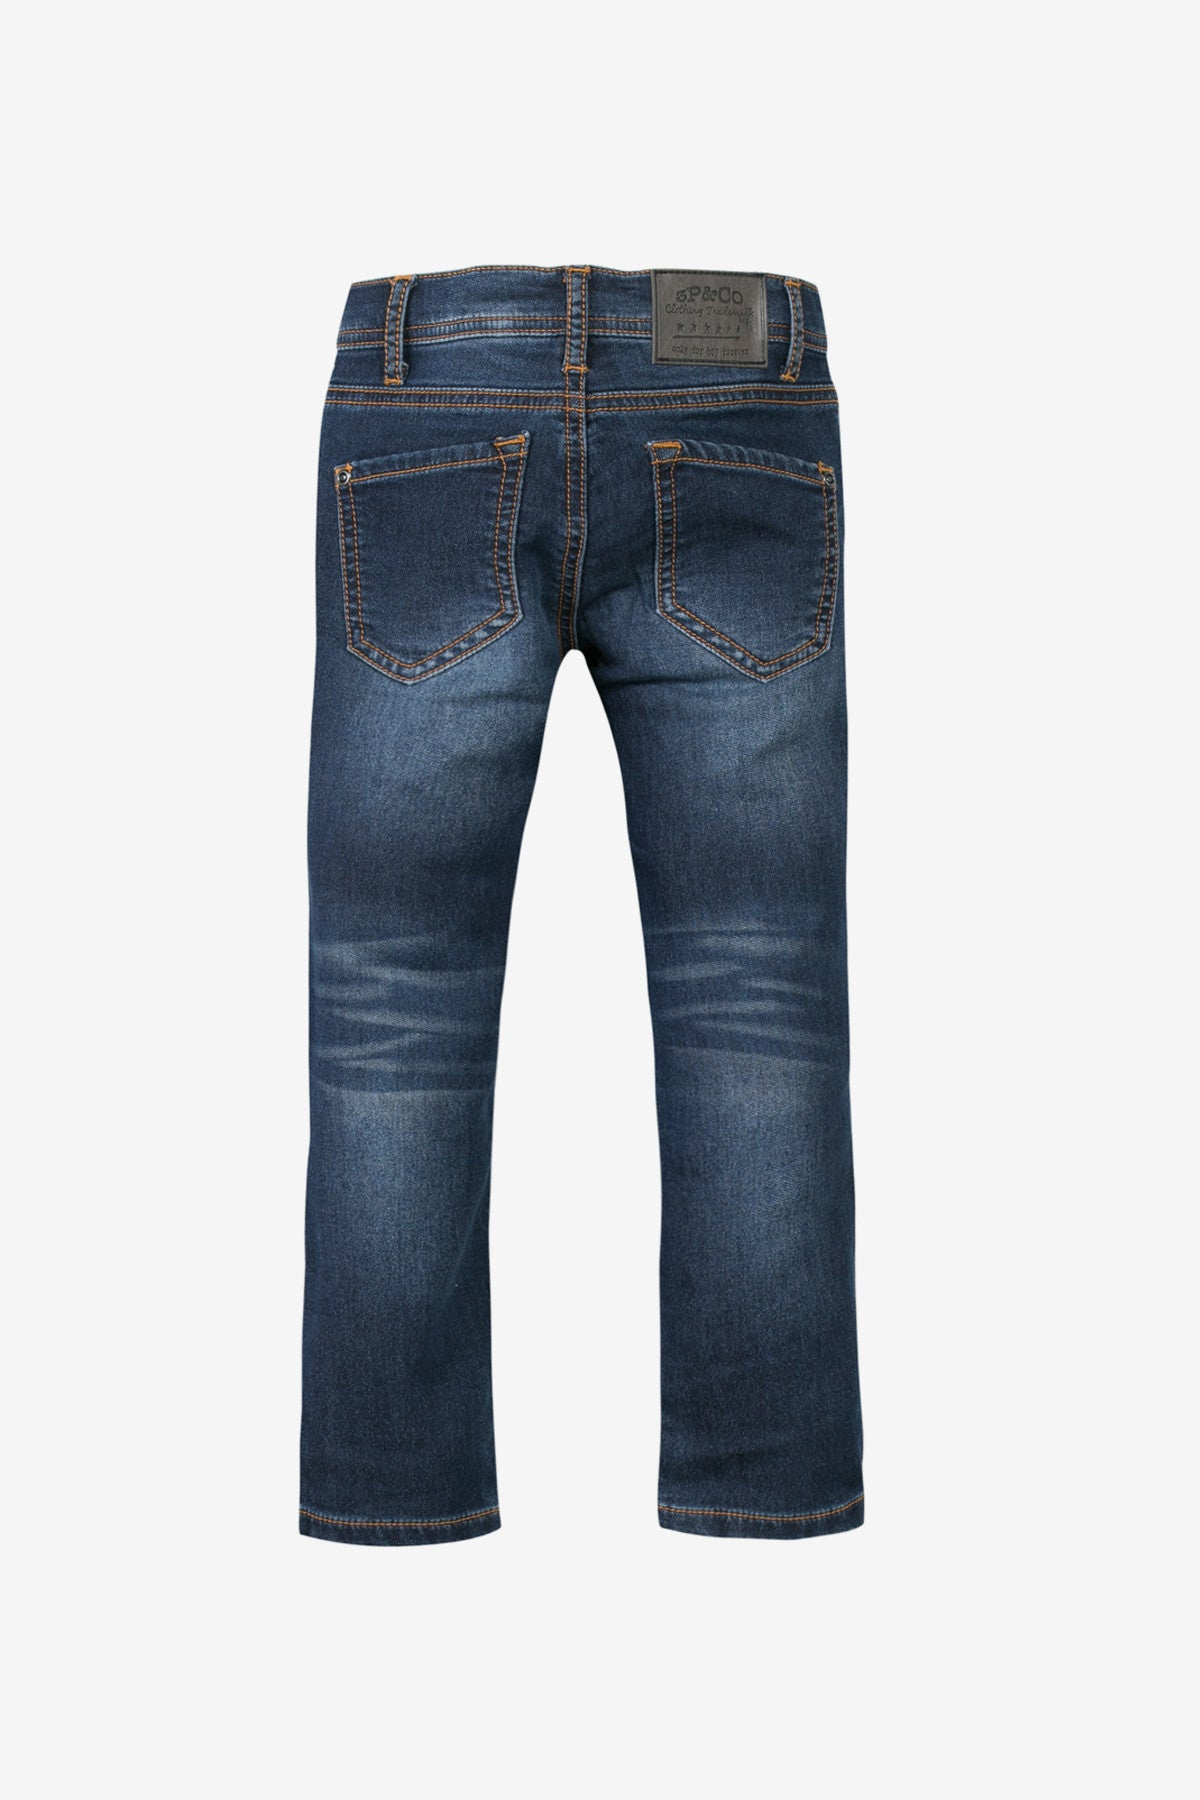 3pommes Blue Denim Jeans